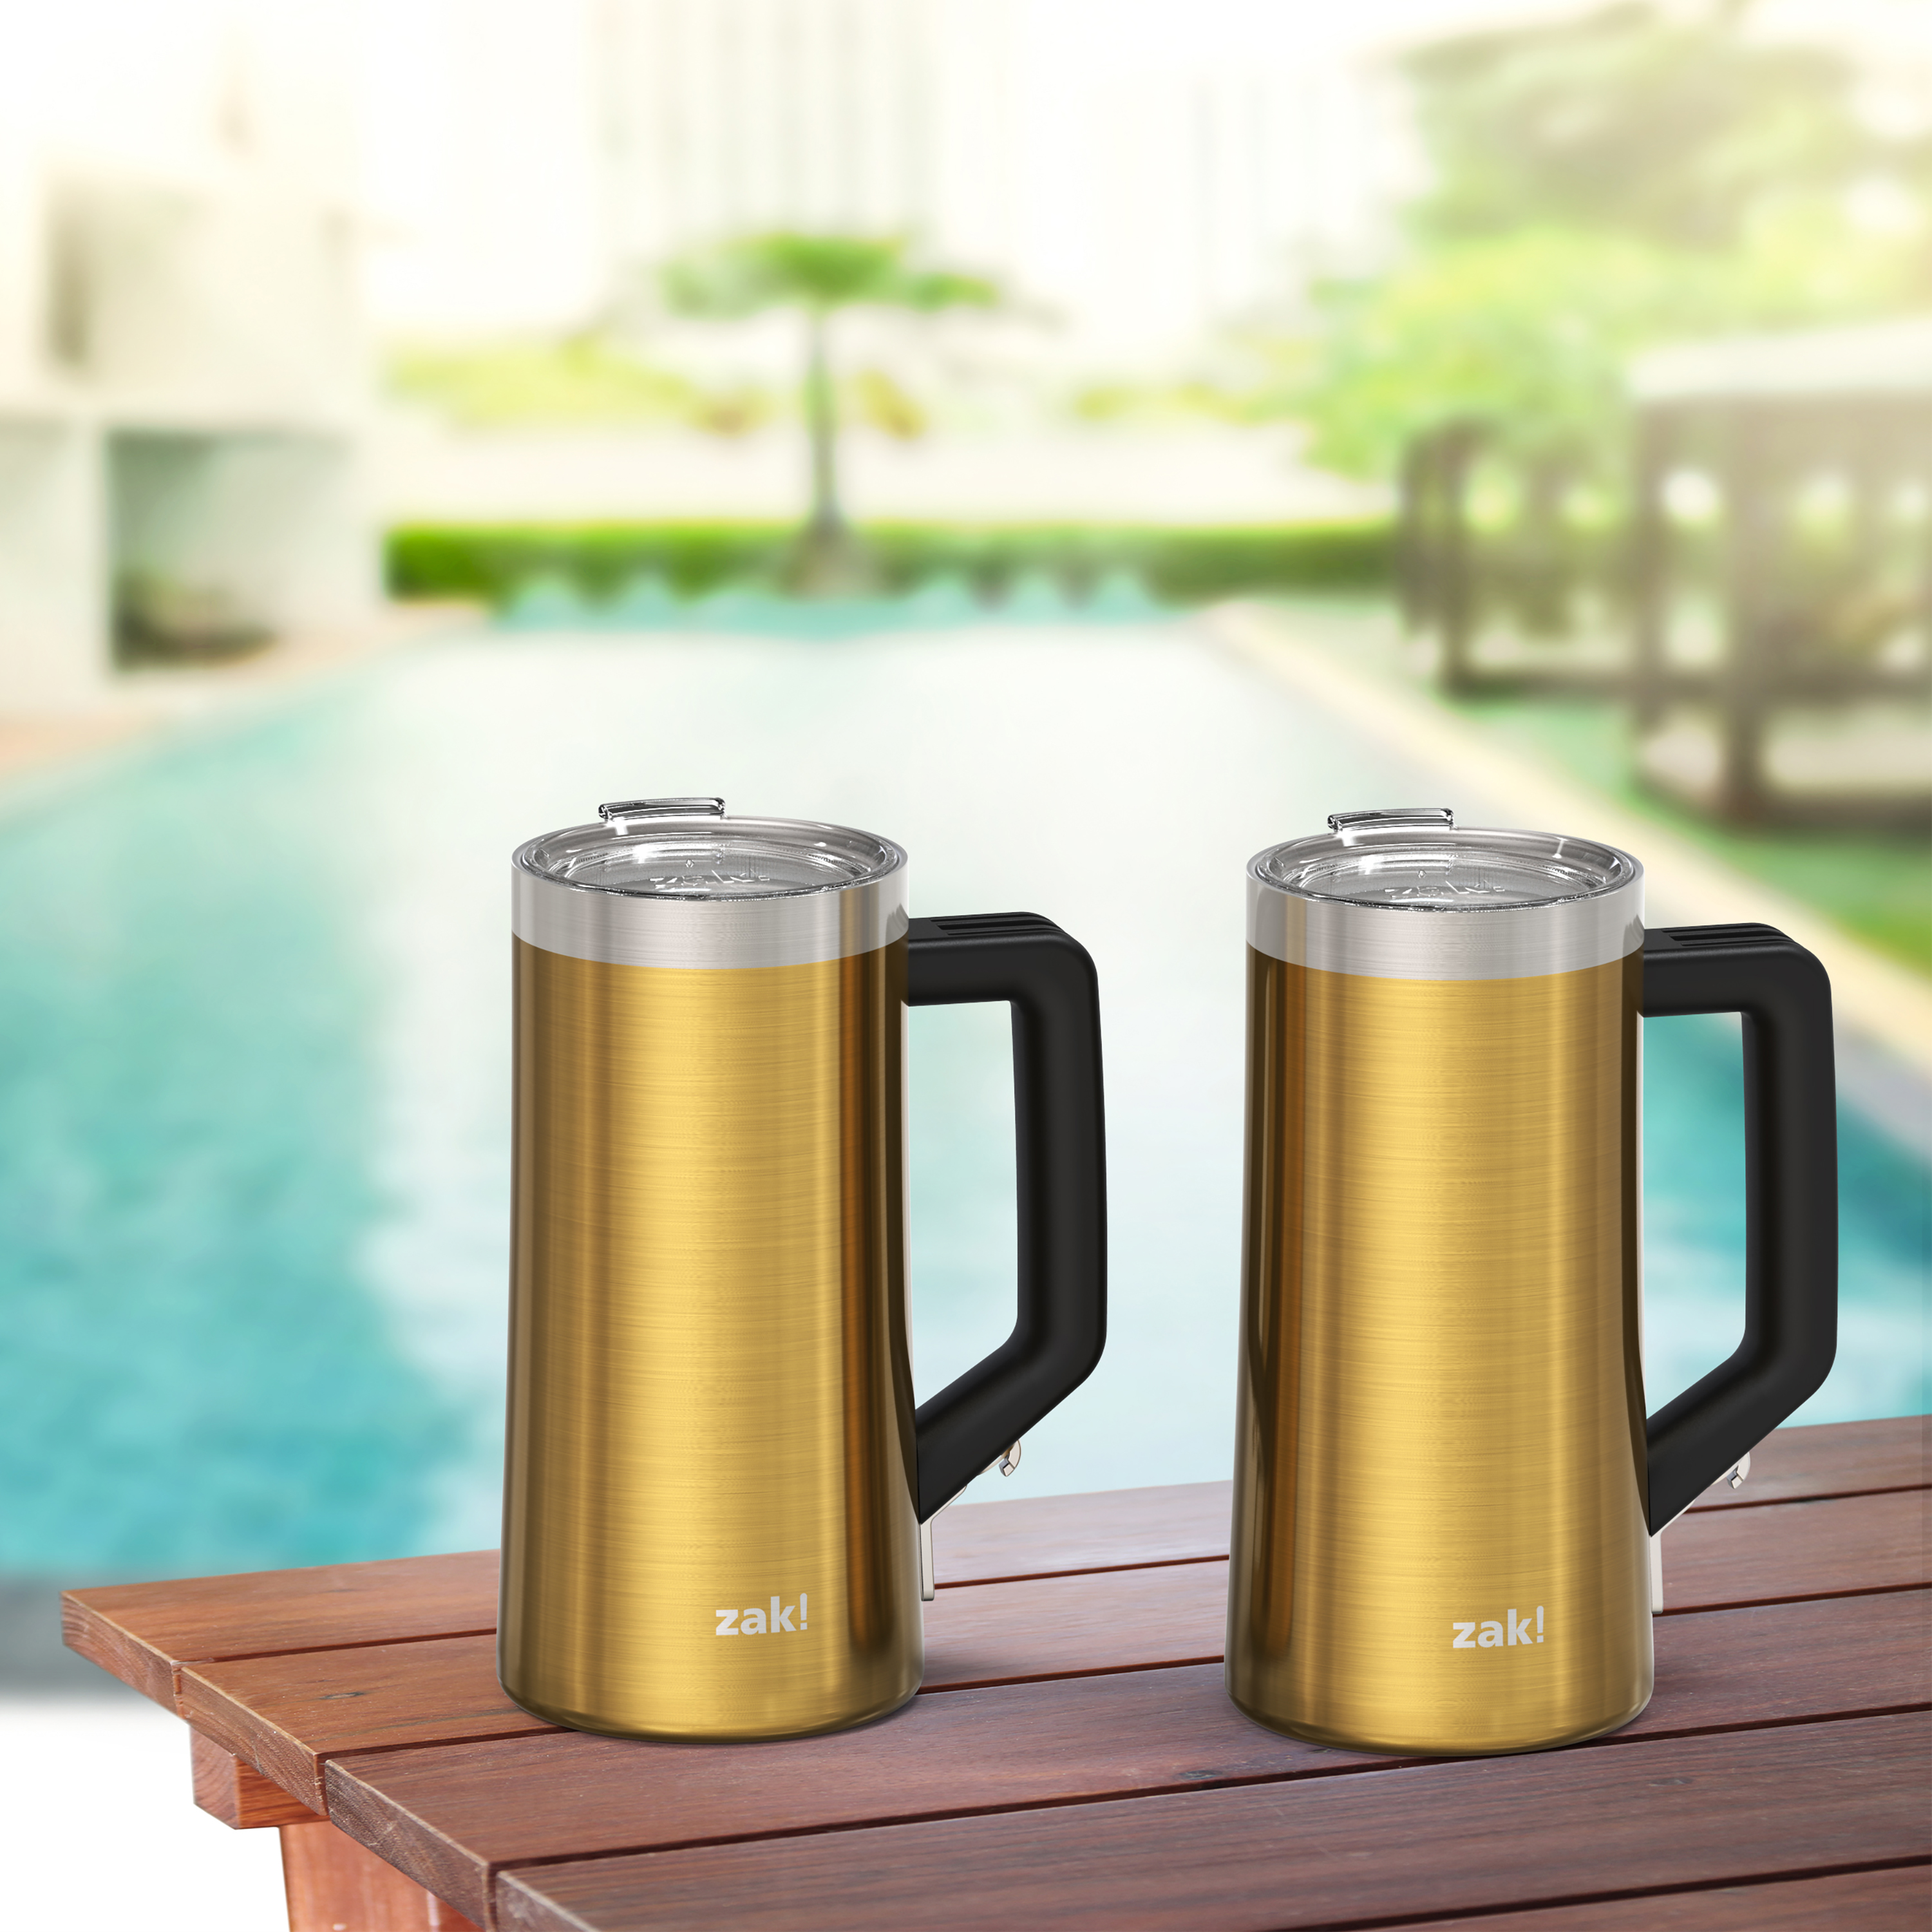 Creston 25 ounce Vacuum Insulated Stainless Steel Tumbler, Gold slideshow image 10